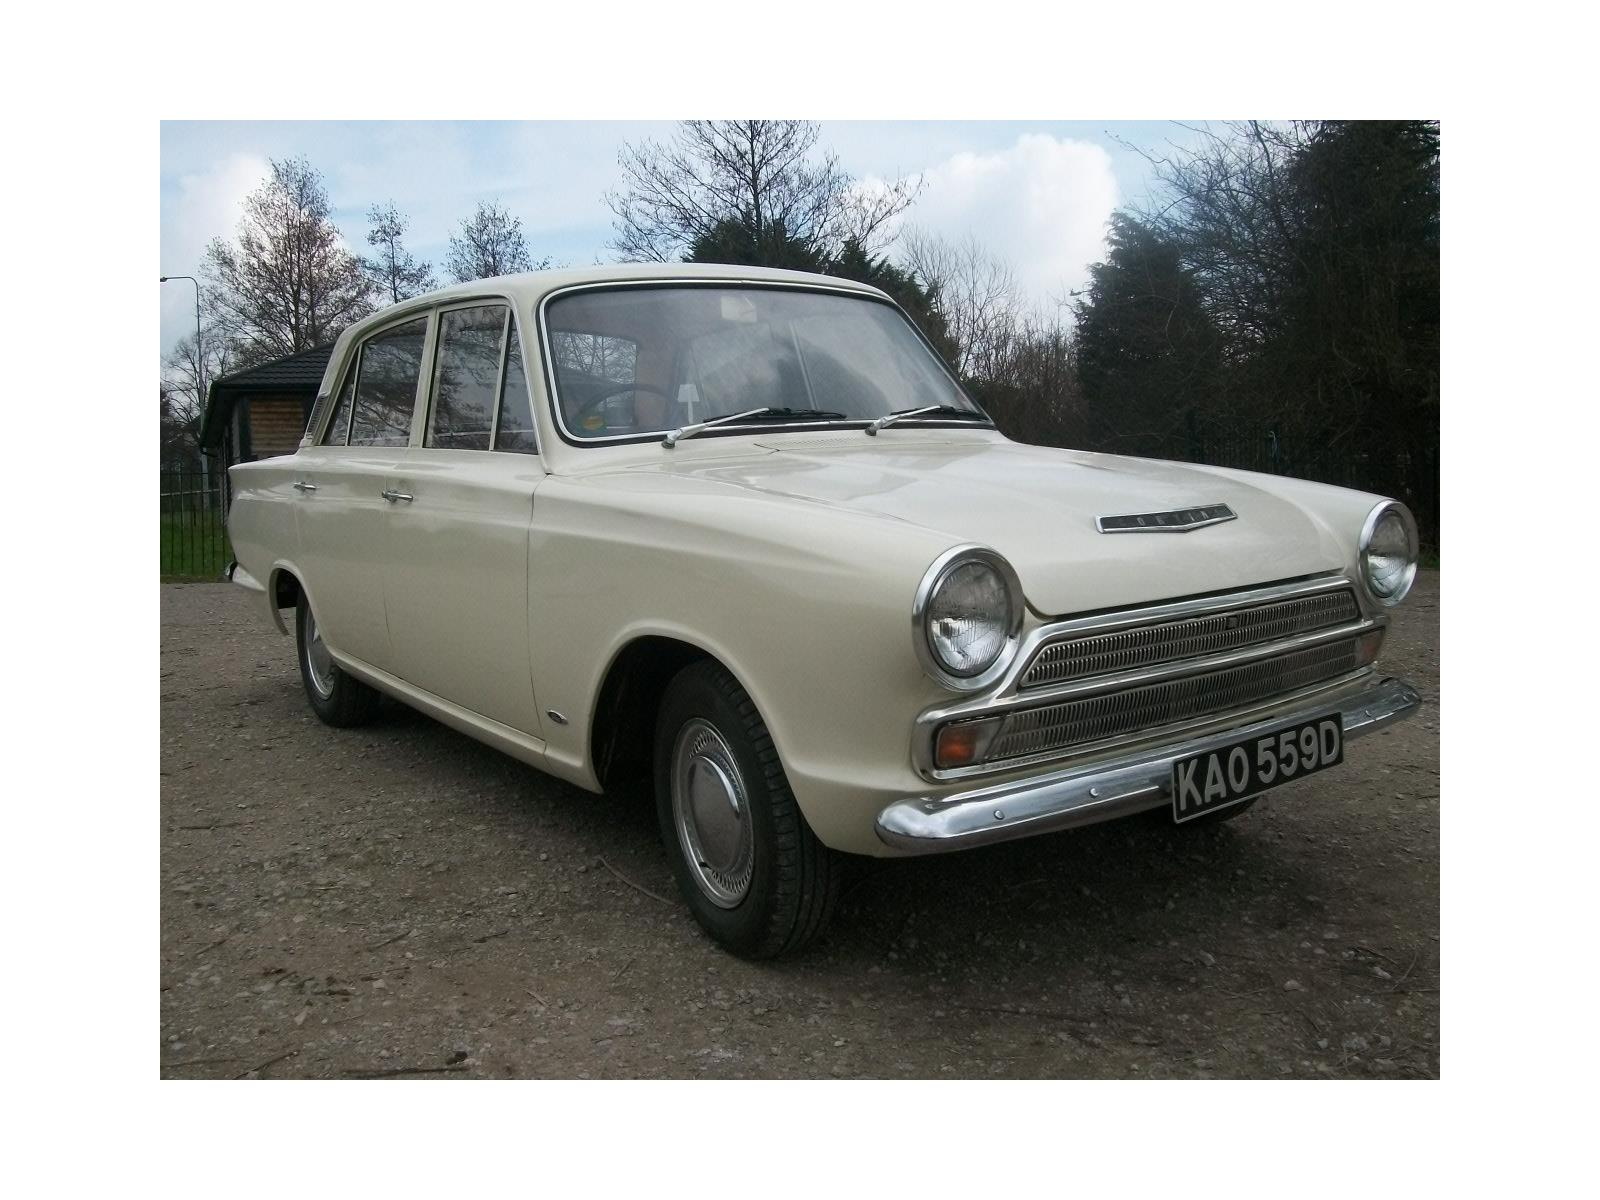 1966 FORD CORTINA MK1 (113E) 4 DOOR SALOON